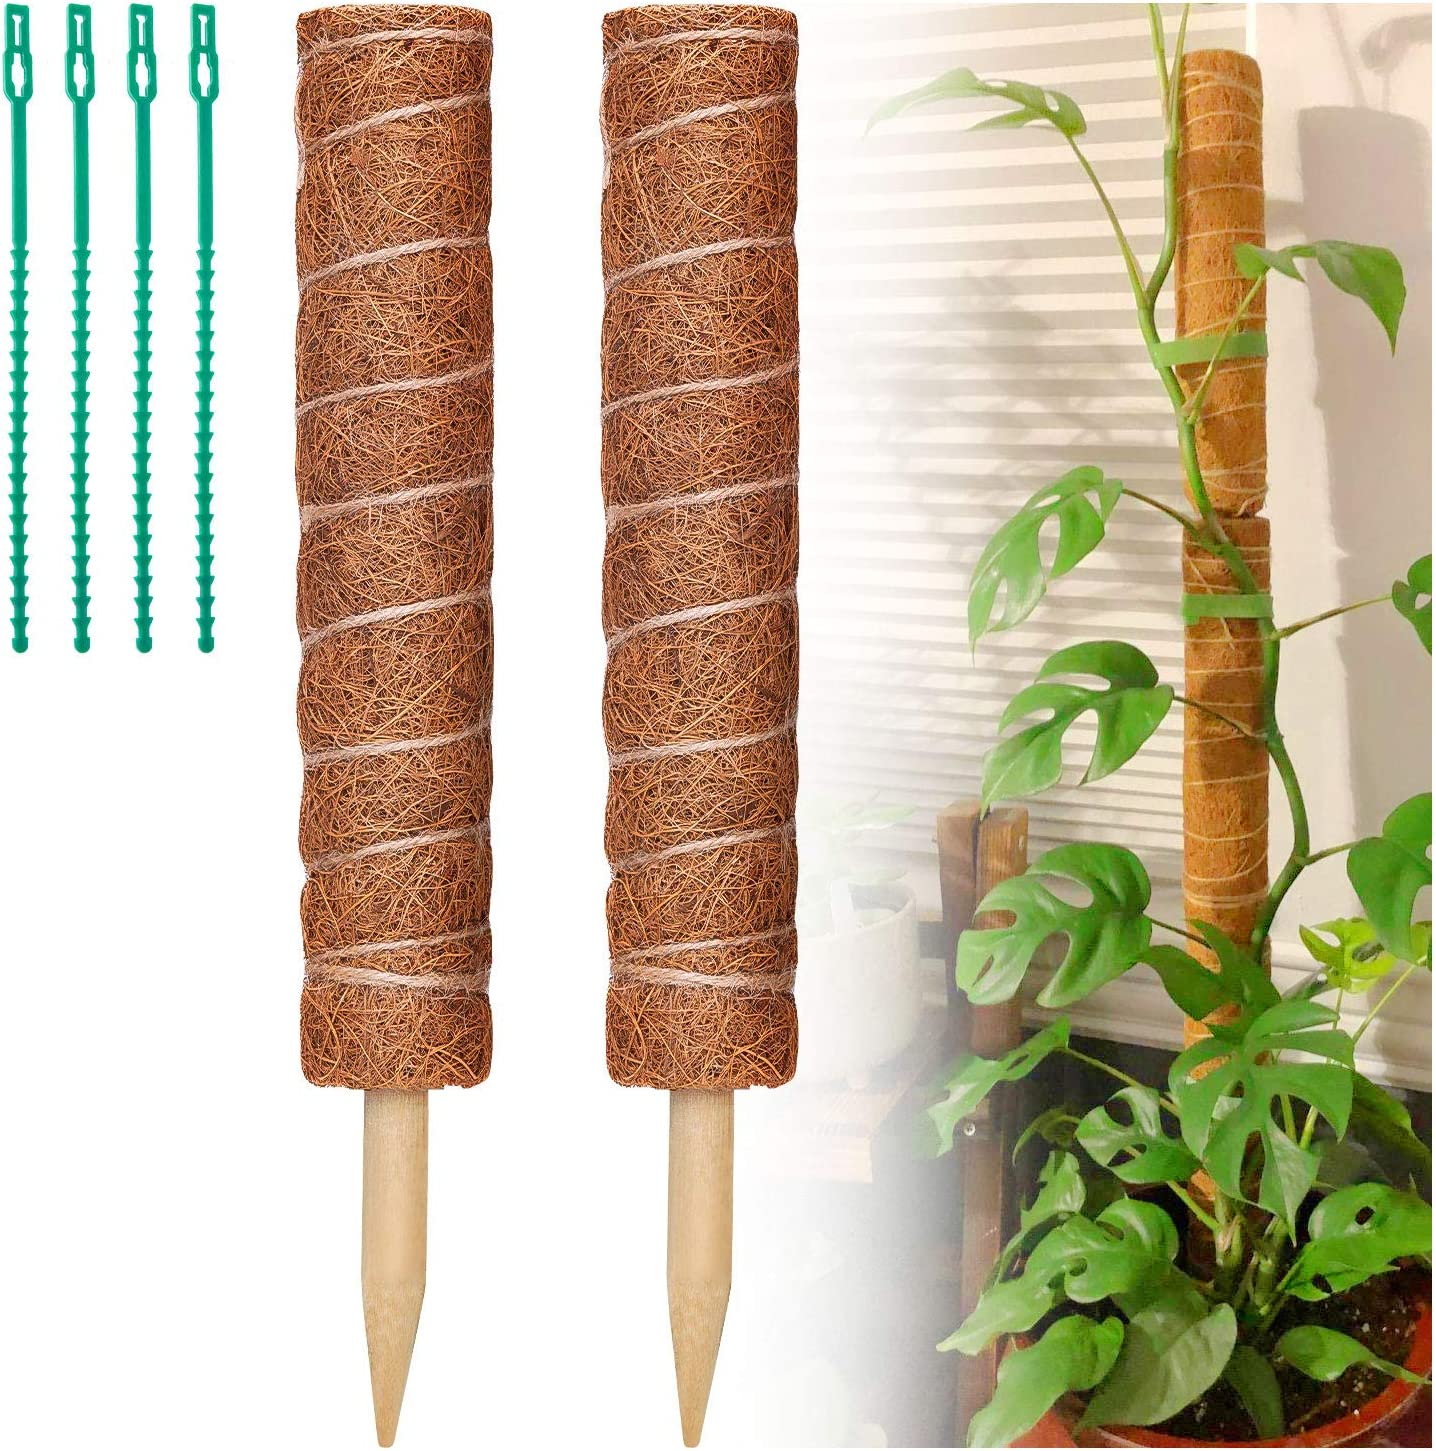 FFNIU730 Moss Pole - 2 Pack 17.7 Inches Plants Support Moss Stick with 4 Pcs Plant Twist Ties, Coir Moss Totem Pole for Climbing Plants, Potted Plants, Monstera